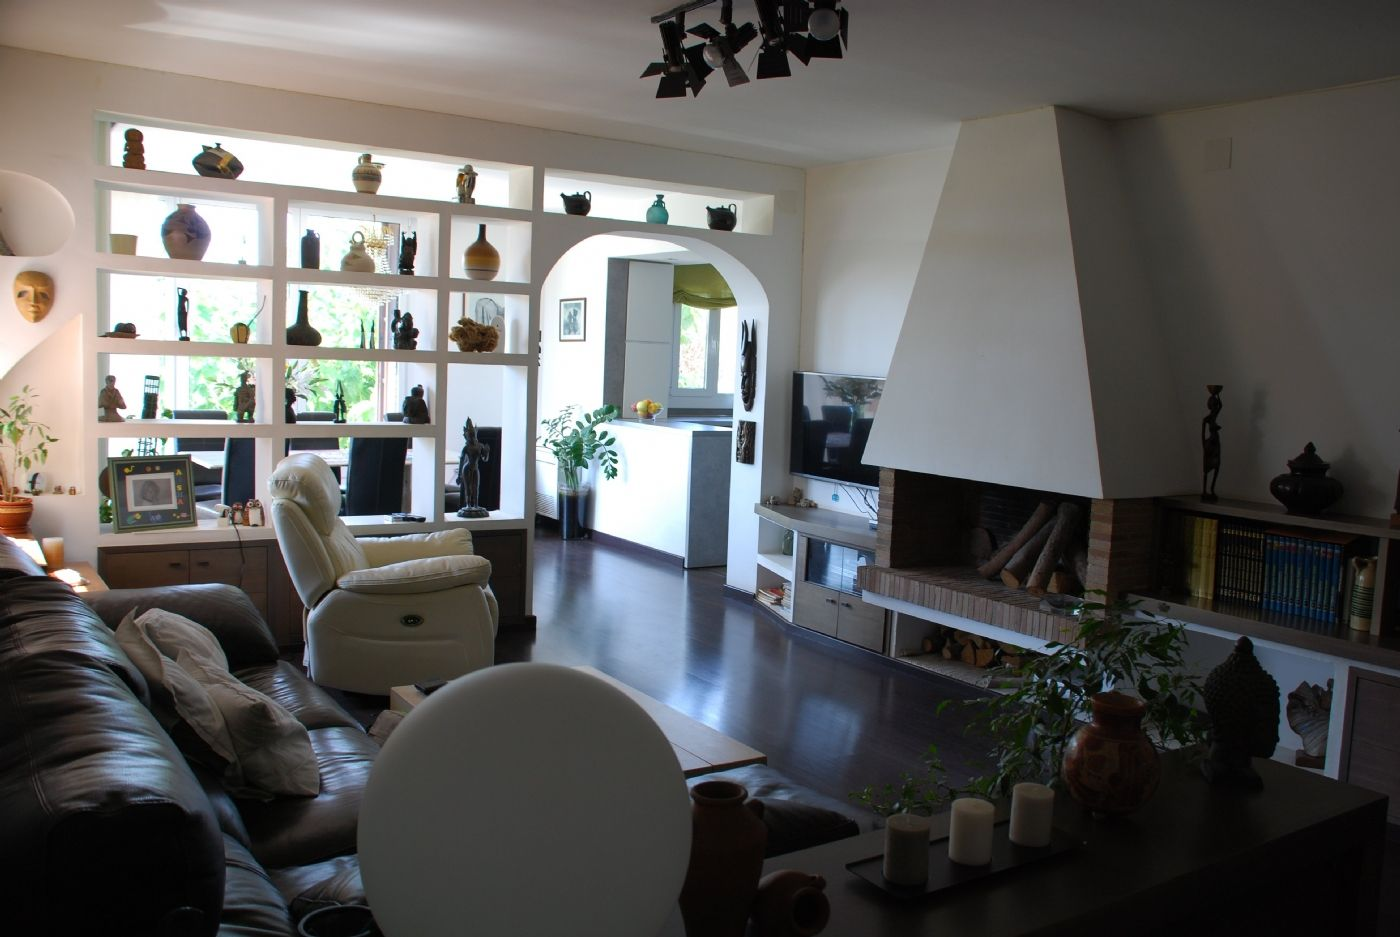 Apartment in Carrer bosc d. Apartamento planta superior colonia guell